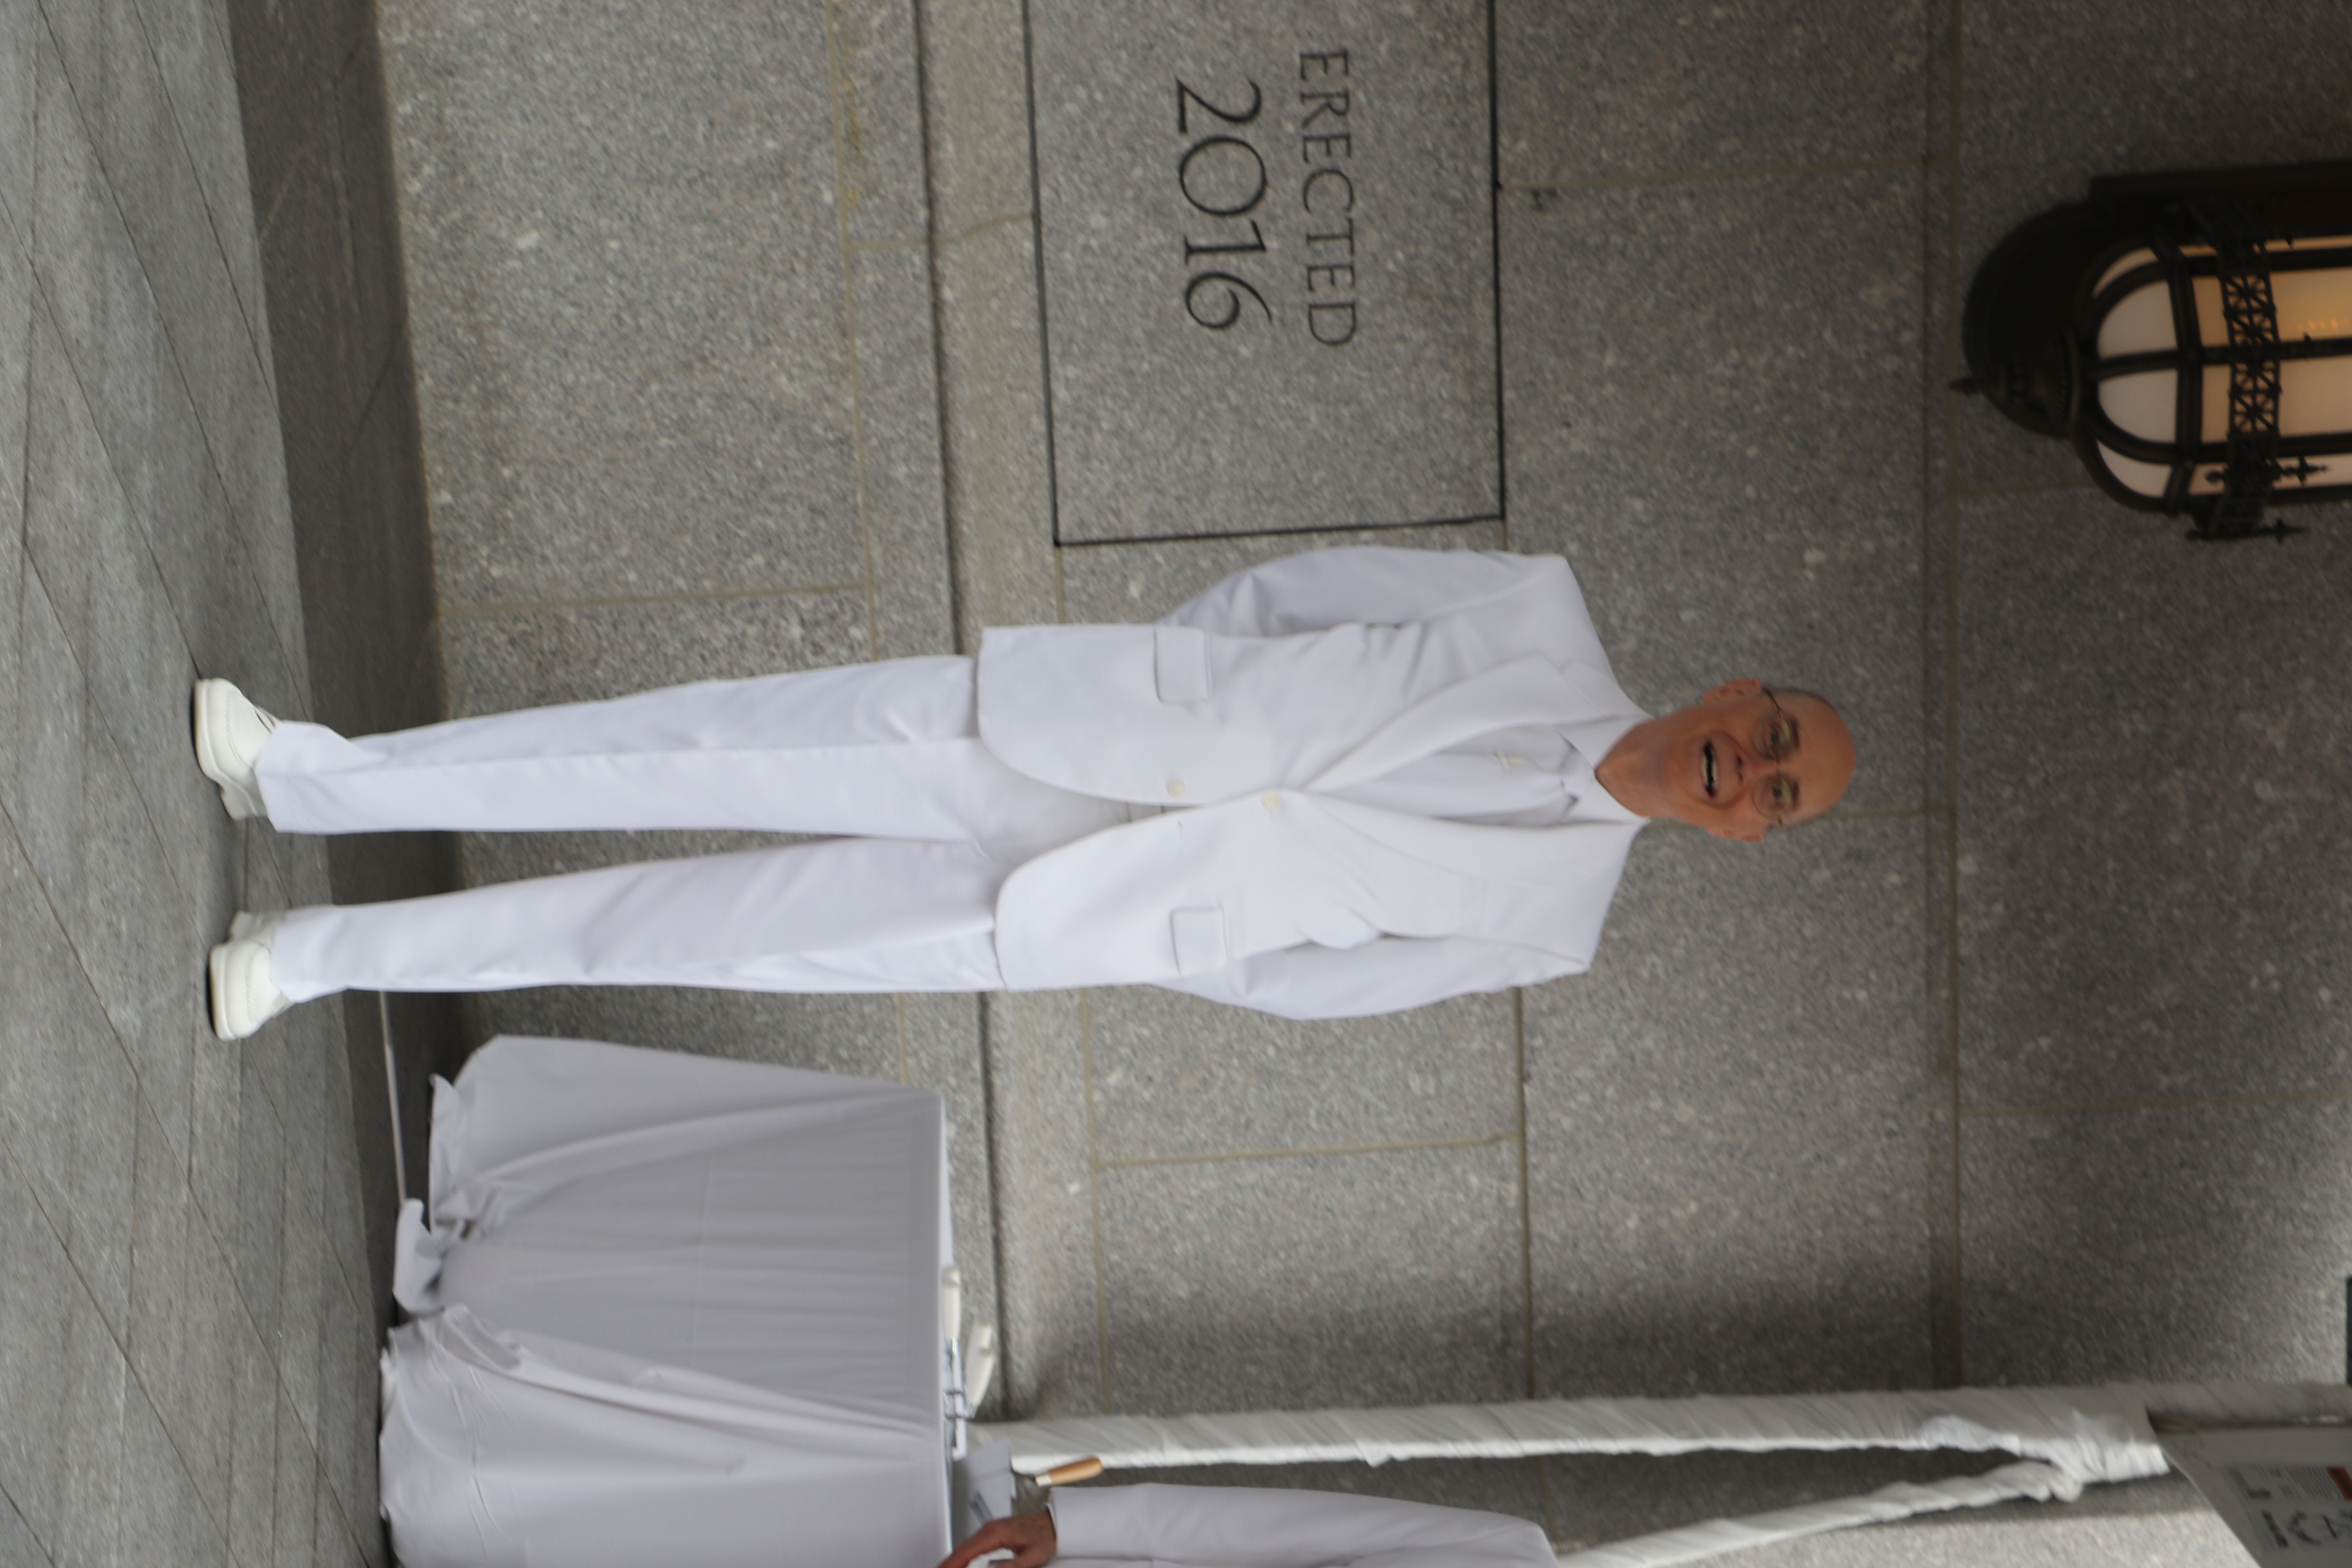 President Henry B. Eyring, first counselor in the First Presidency, participates in the cornerstone ceremony of the Philadelphia Pennsylvania Temple on Sept. 18, 2016.